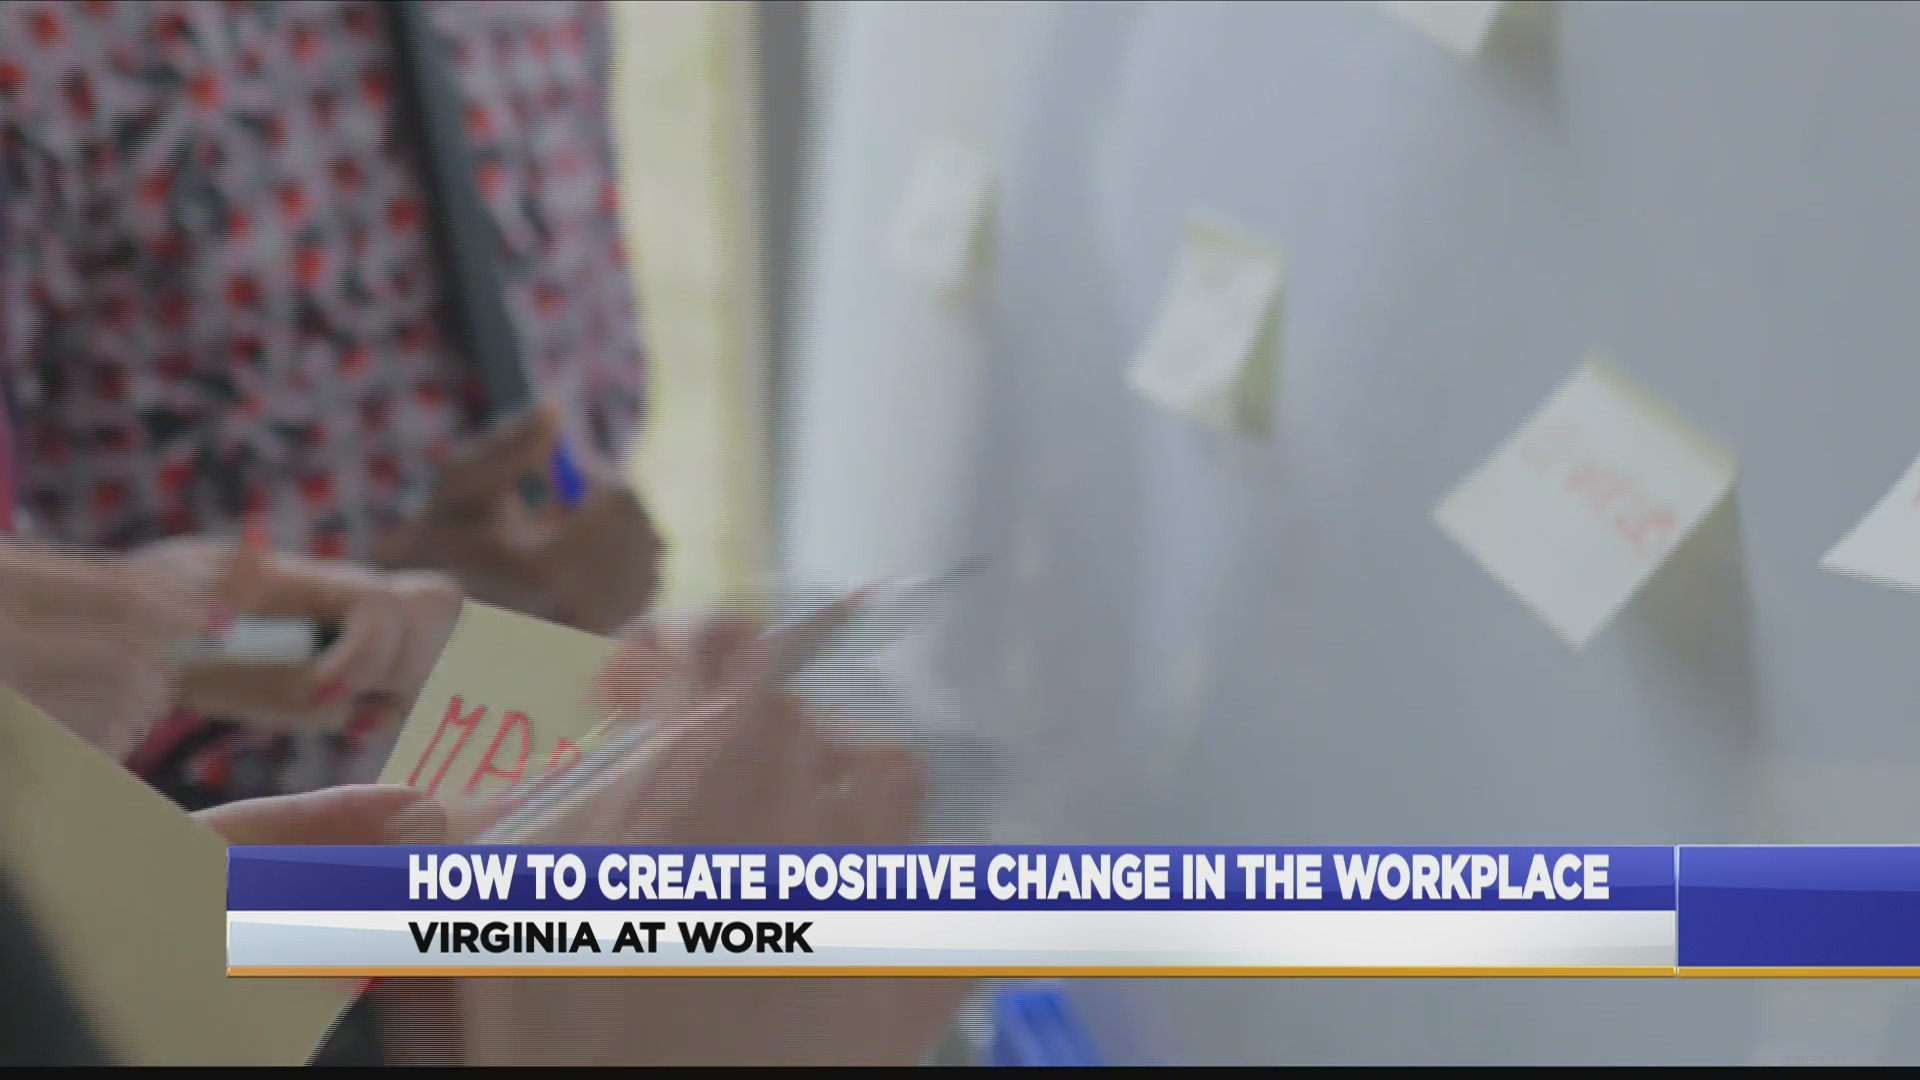 How to create positive change in the workplace